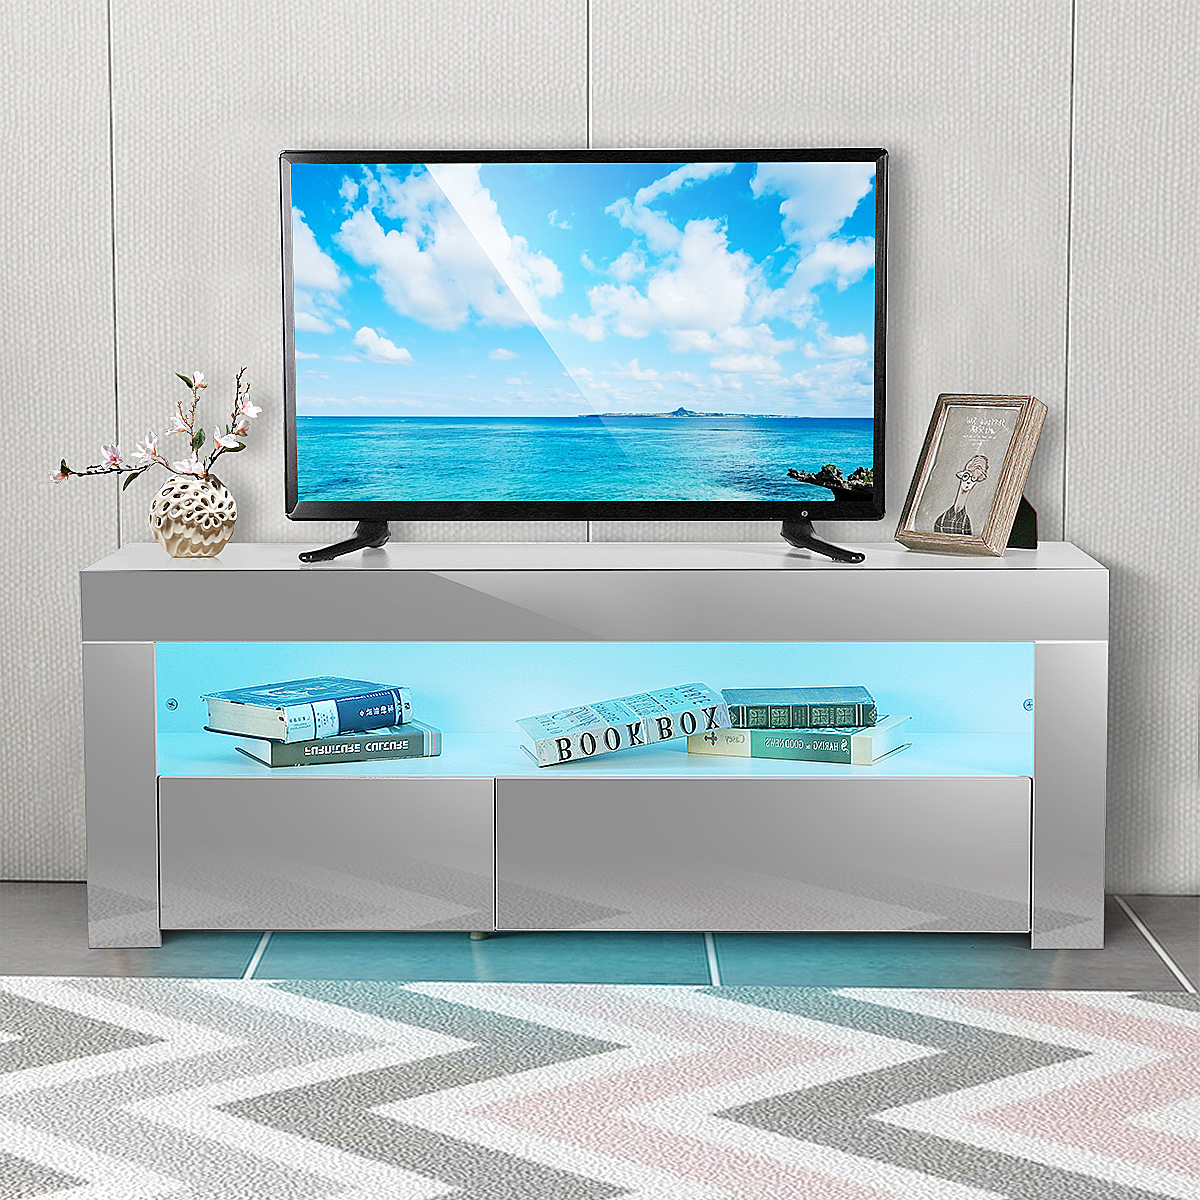 """47"""" Tv Stand High Gloss Tv Cabinet, With 16 Color Leds, 2 Regarding 2017 Baba Tv Stands For Tvs Up To 55"""" (View 17 of 25)"""